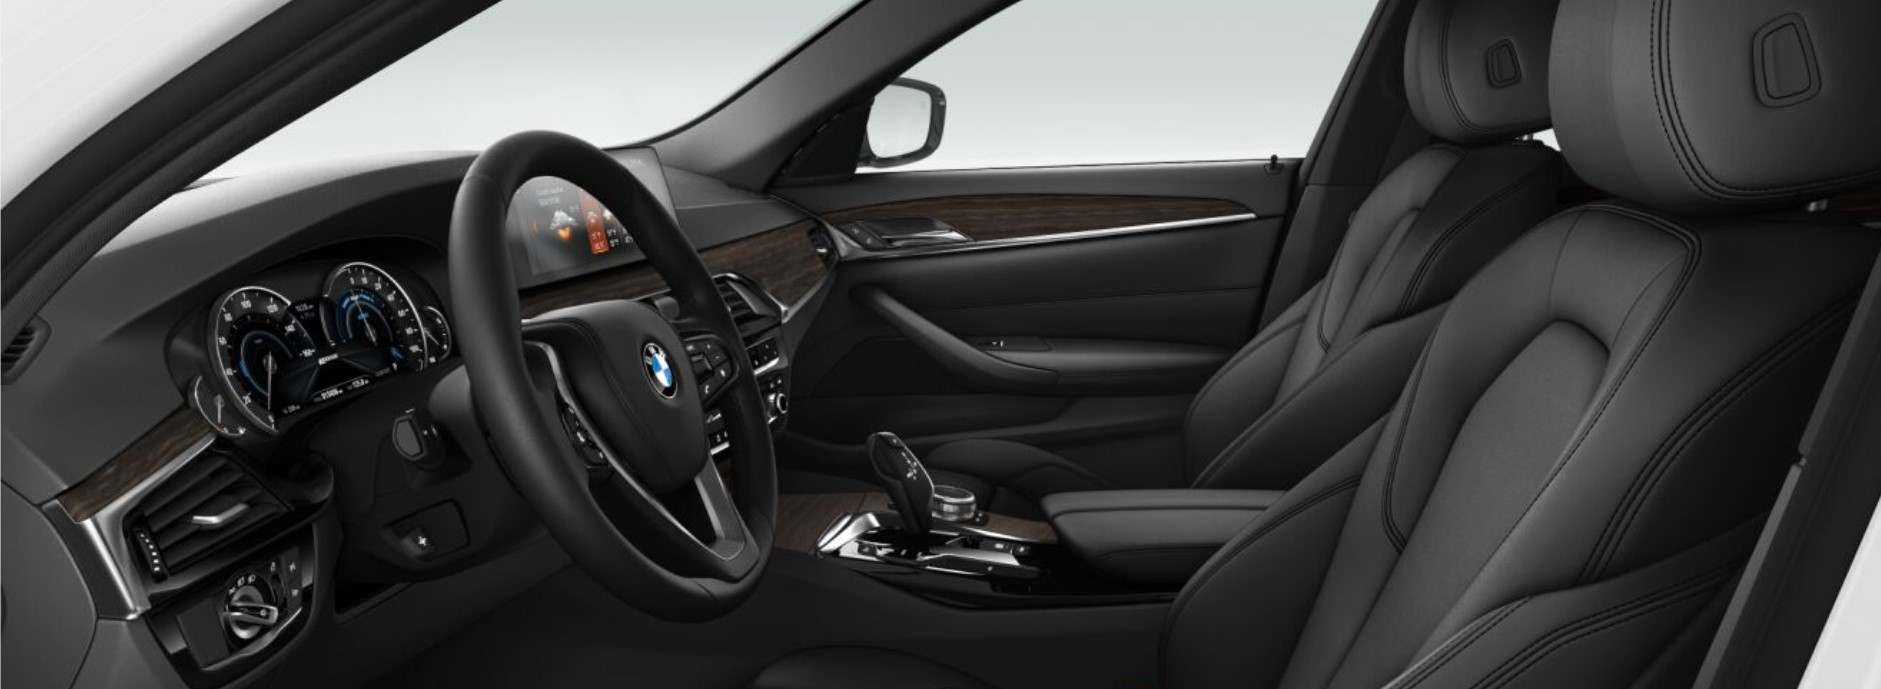 2018 BMW 530e iPerformance Black Interior